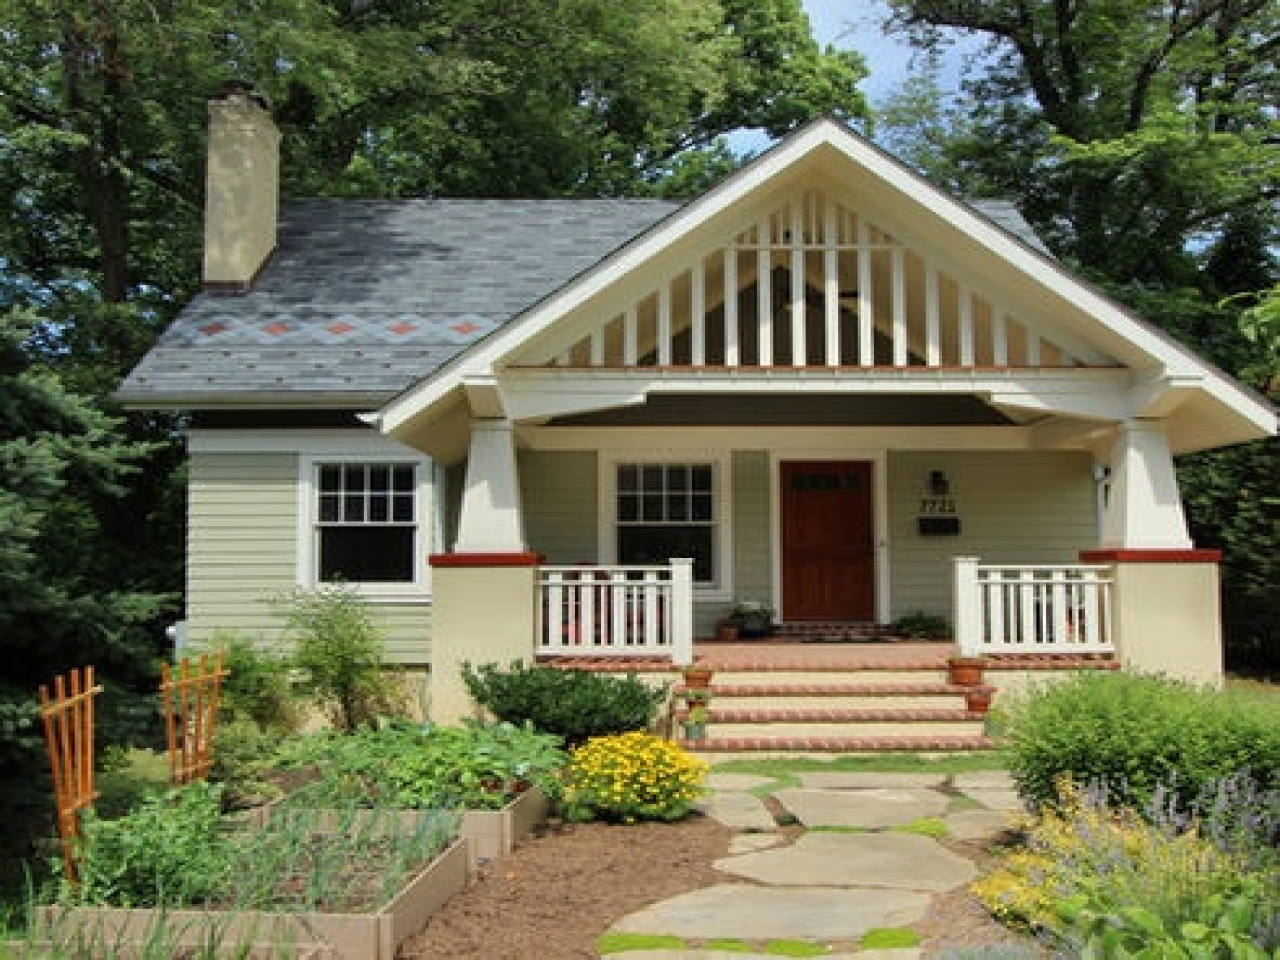 Tiny craftsman style bungalow front porch craftsman style for Craftsman bungalow architecture